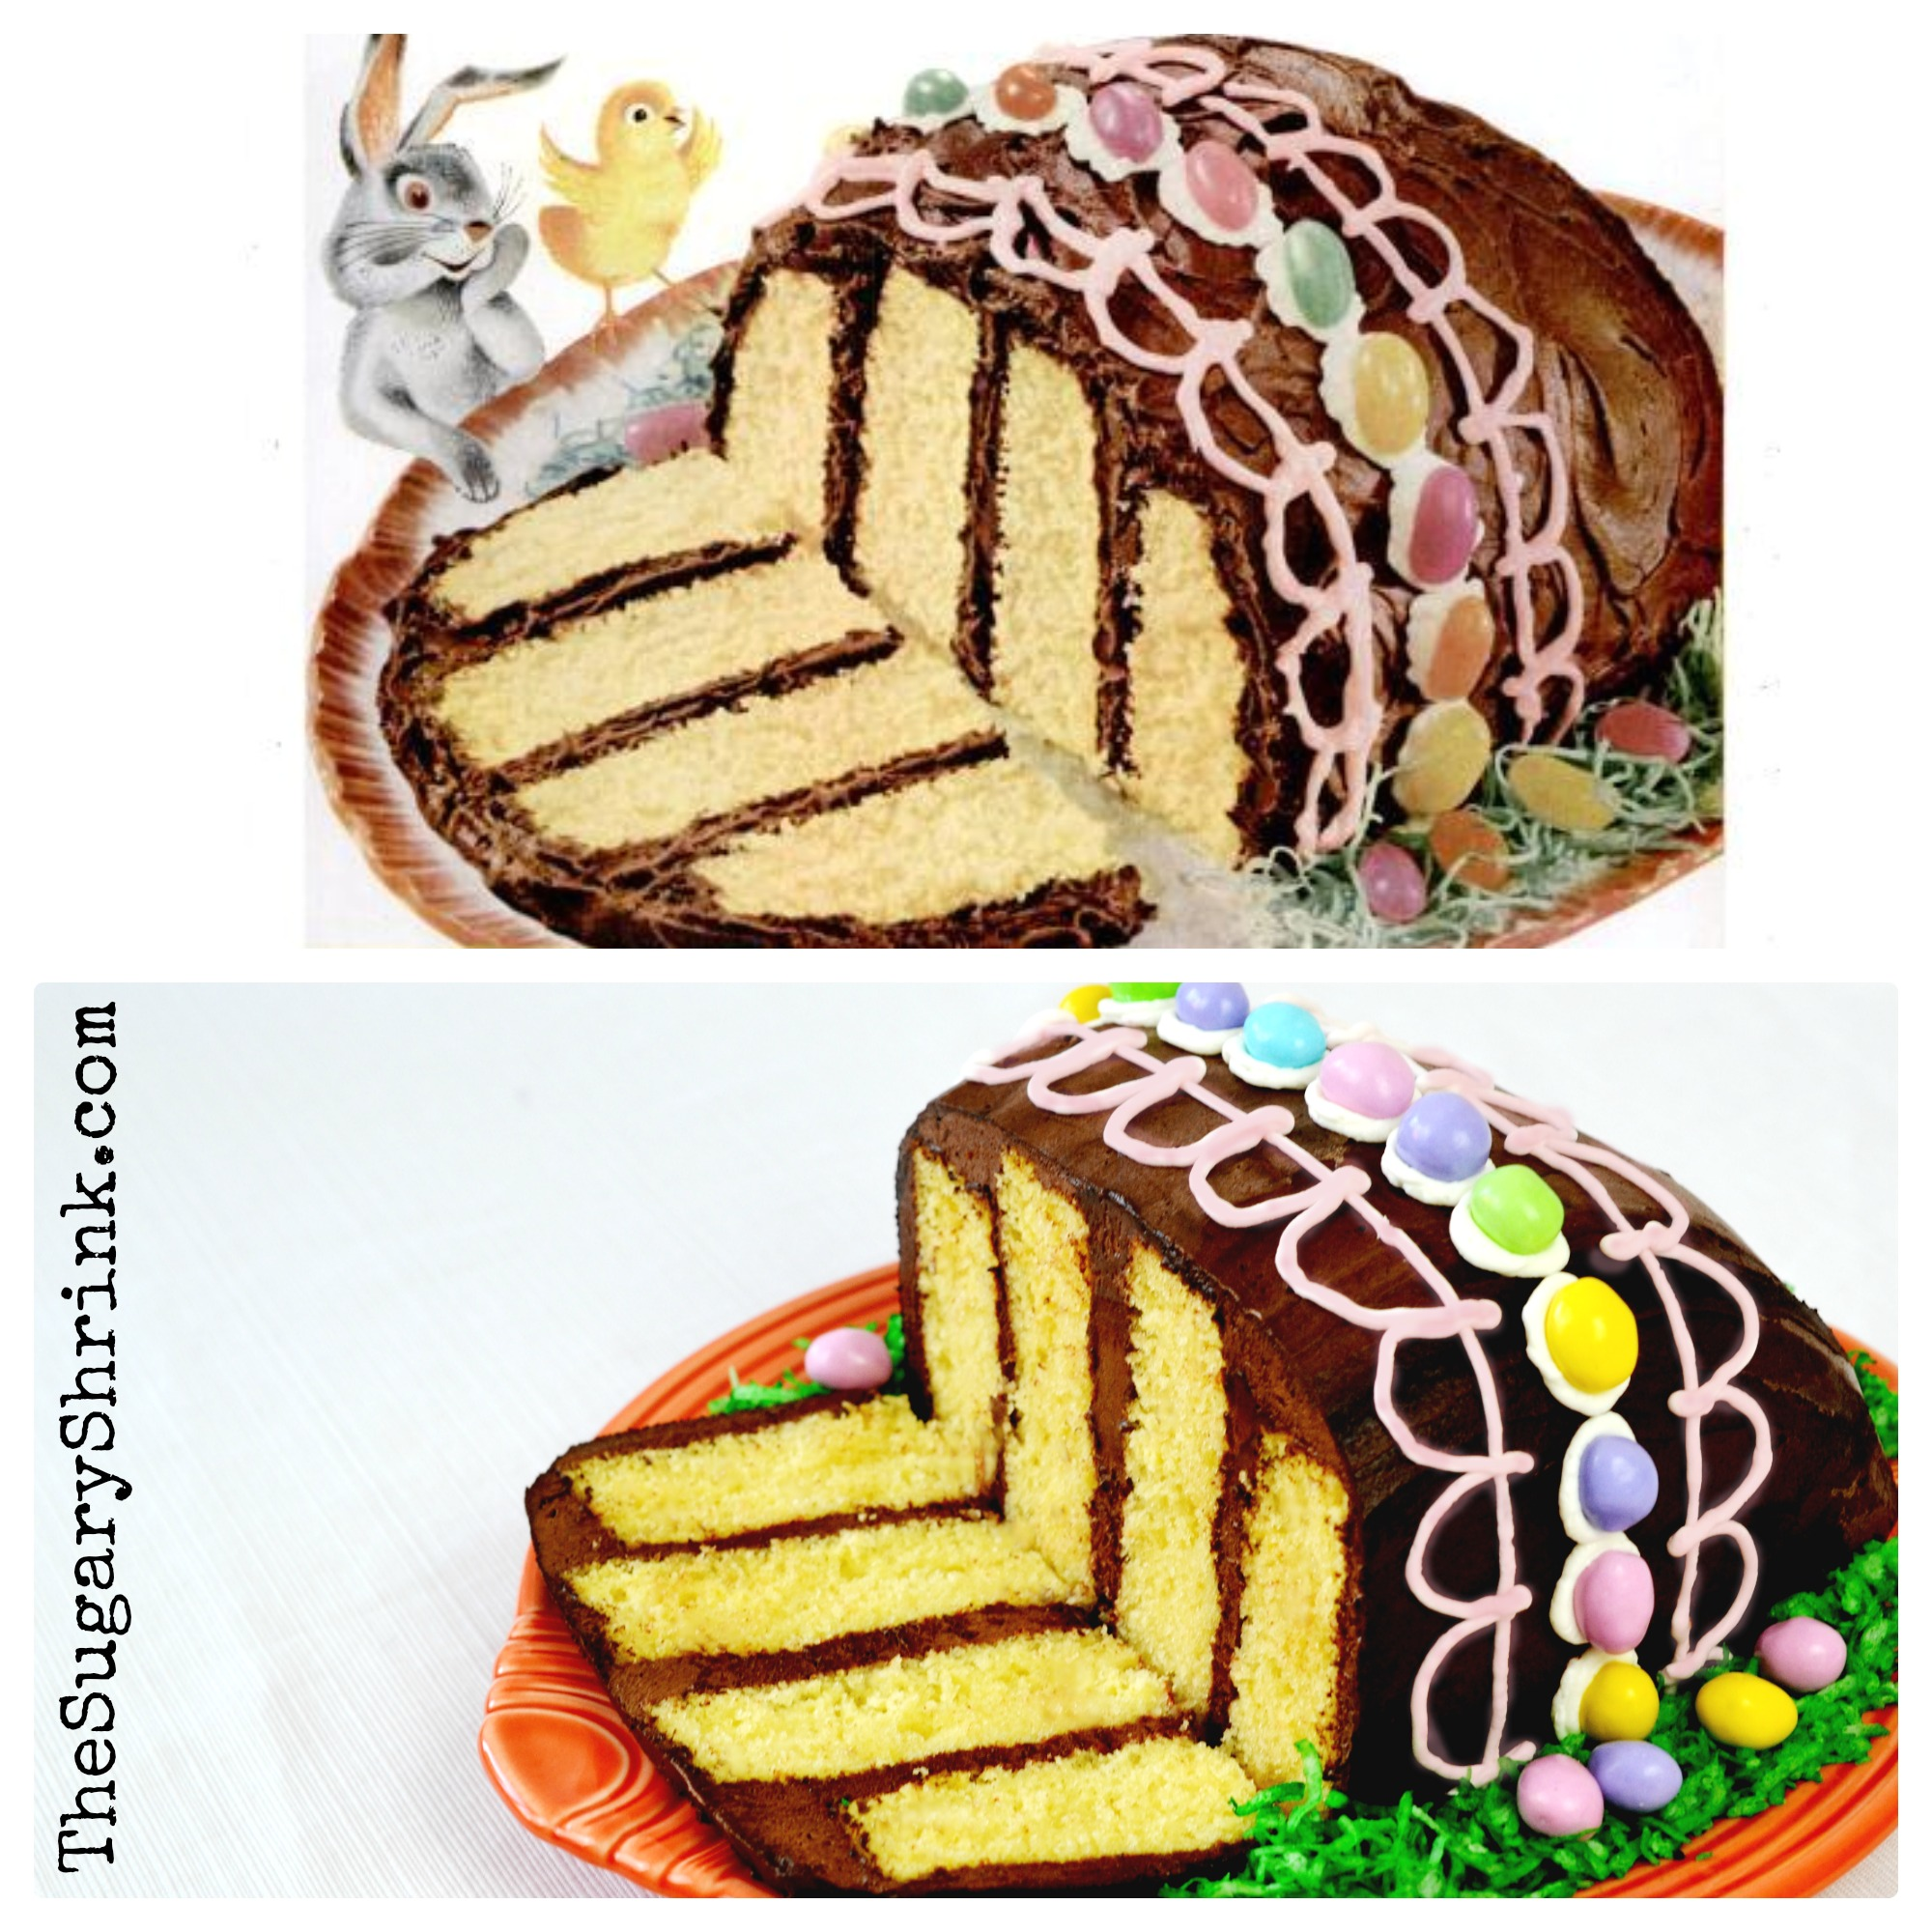 Vintage Recreated: Easter Egg Layer Cake | The Sugary Shrink